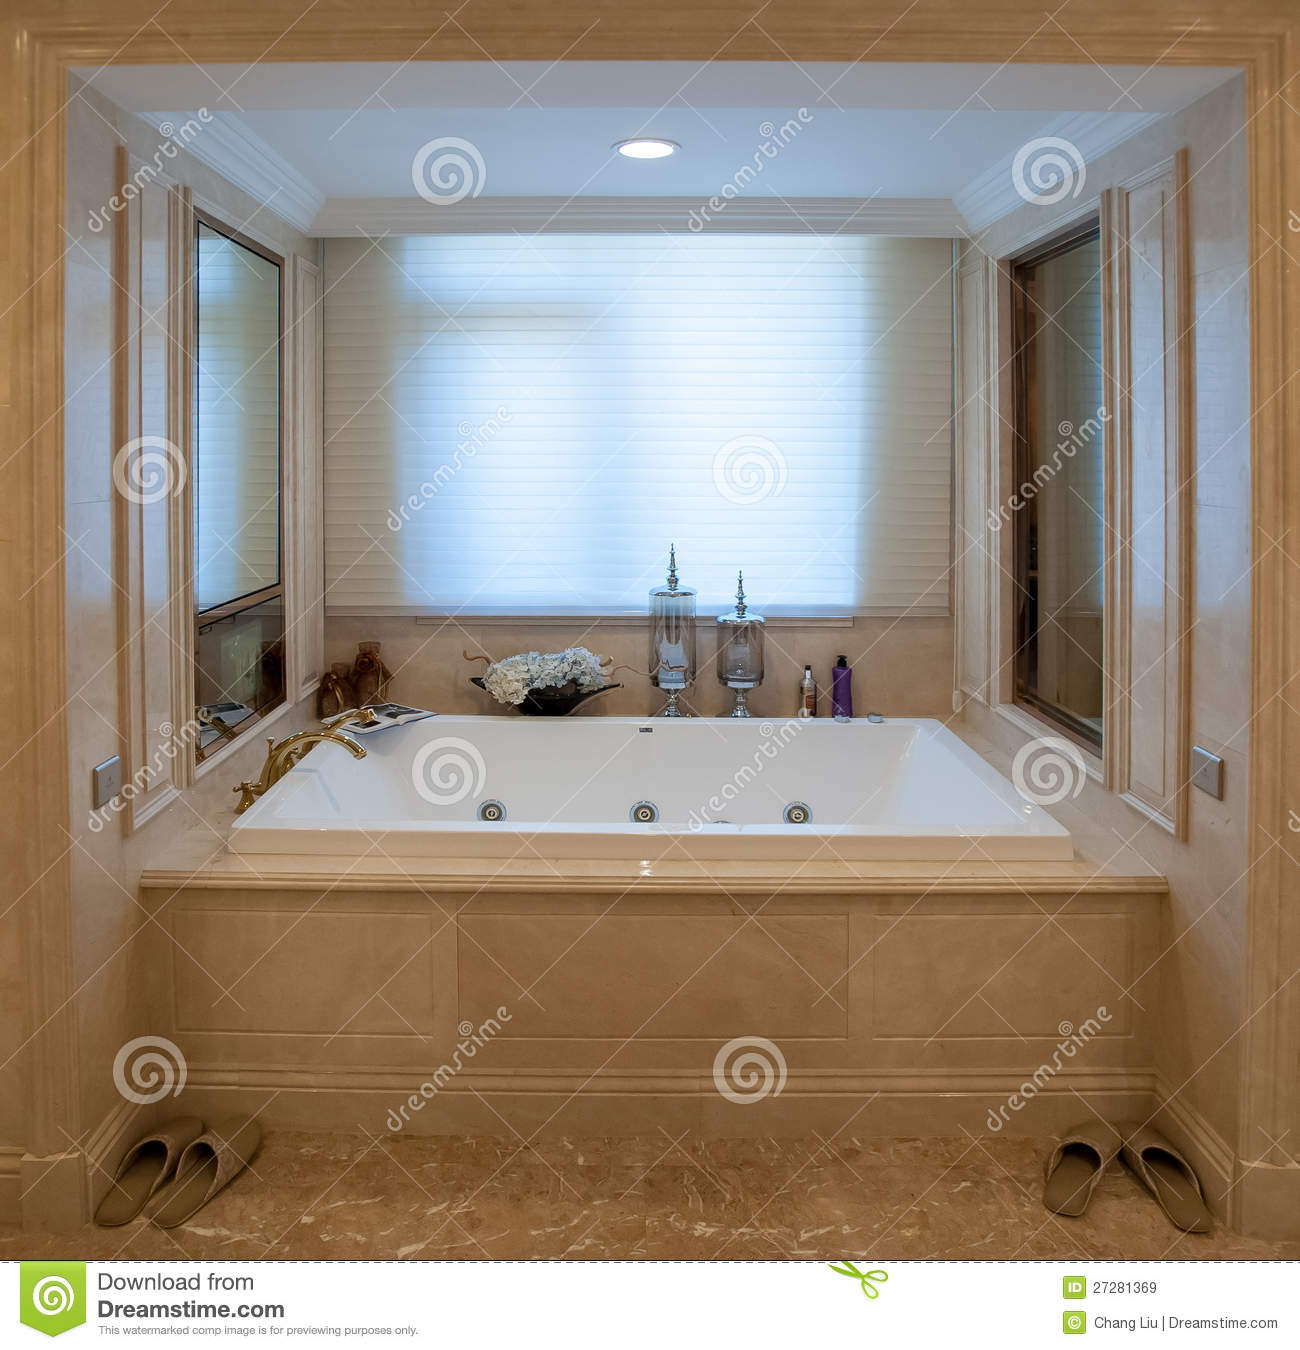 square bathtub royalty free stock images